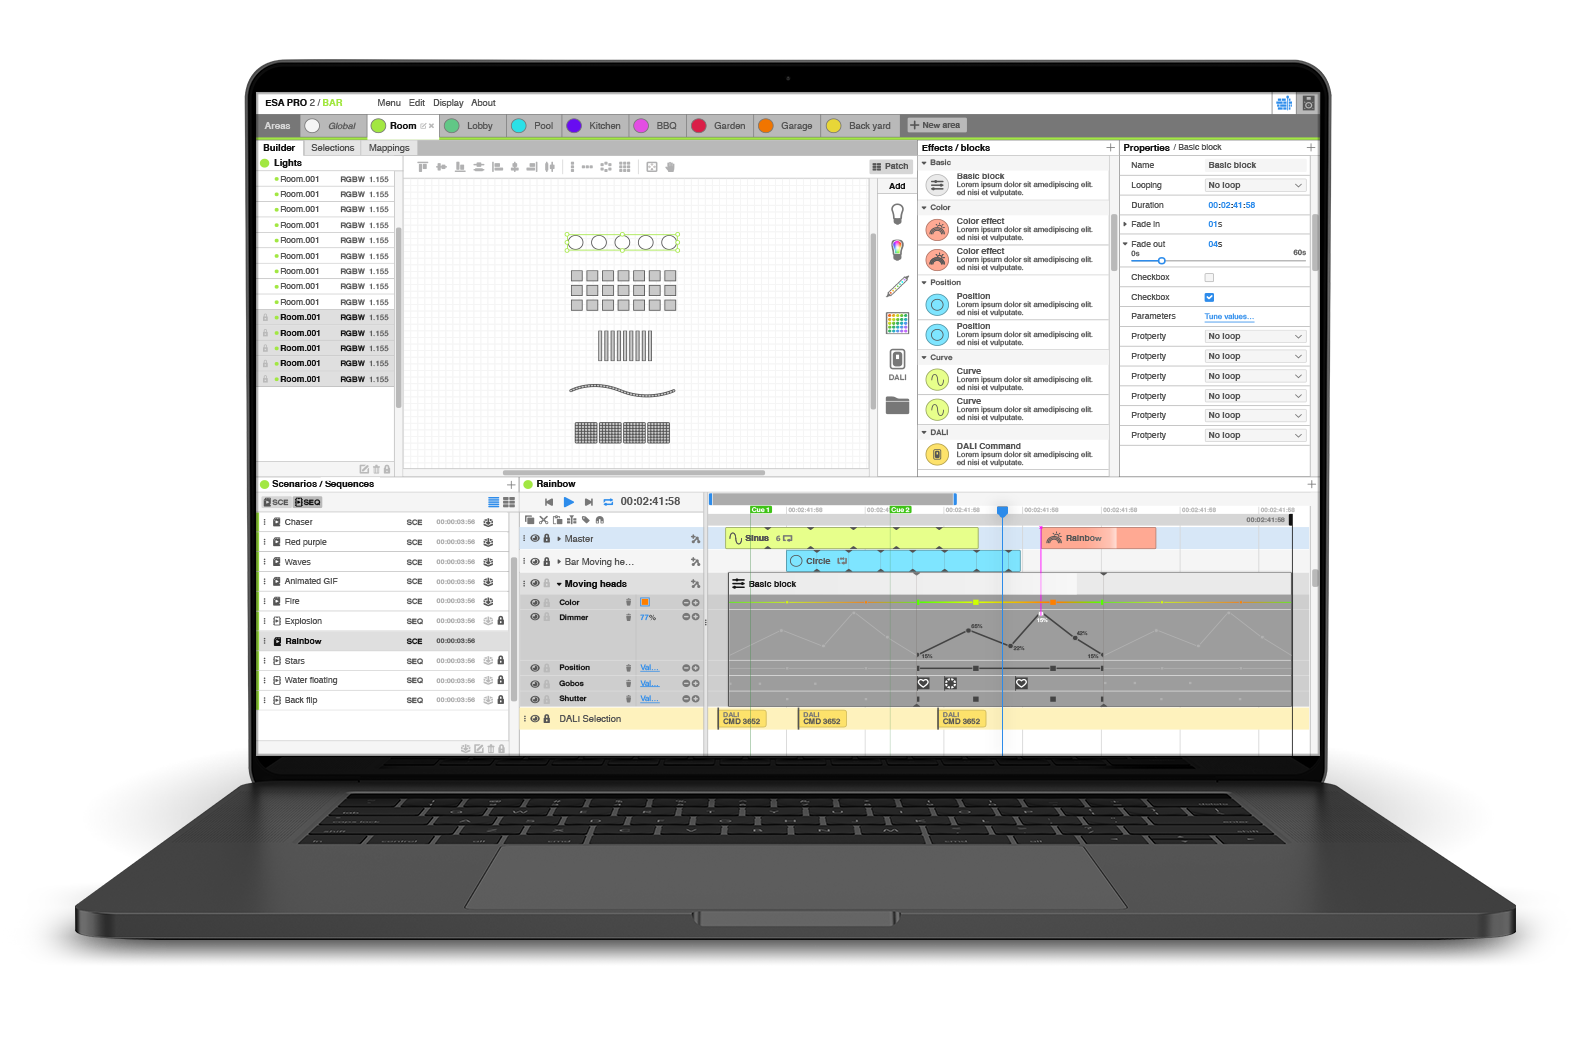 Stupendous Esa Pro 2 Lighting Control Software For Dmx Interfaces Wiring Cloud Ratagdienstapotheekhoekschewaardnl